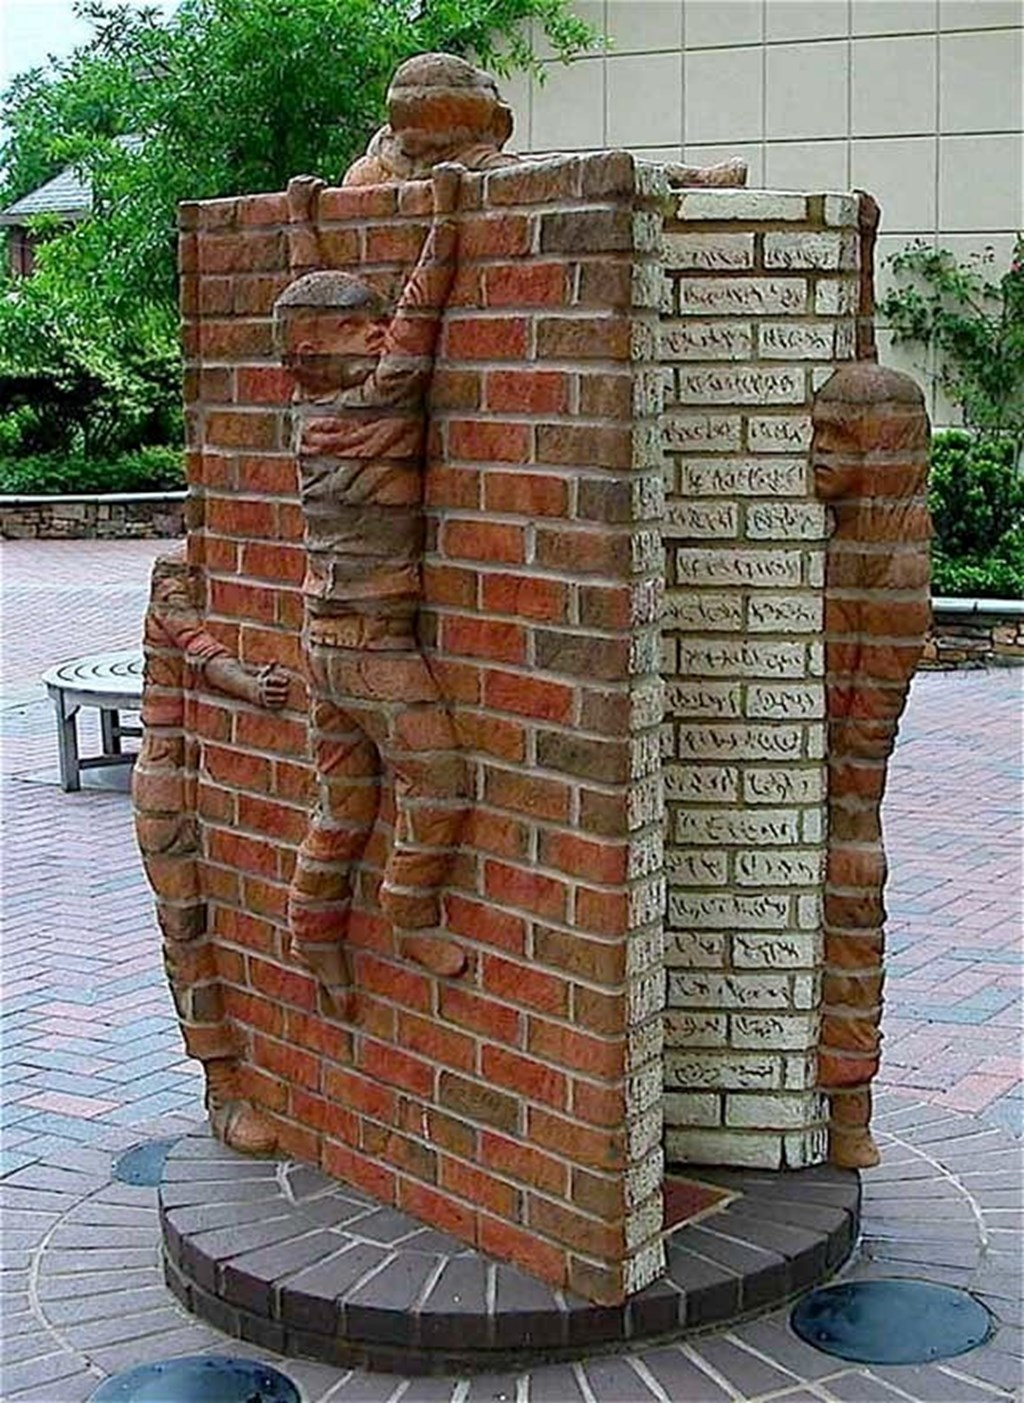 Brick Sculptures By Brad Spencer 5